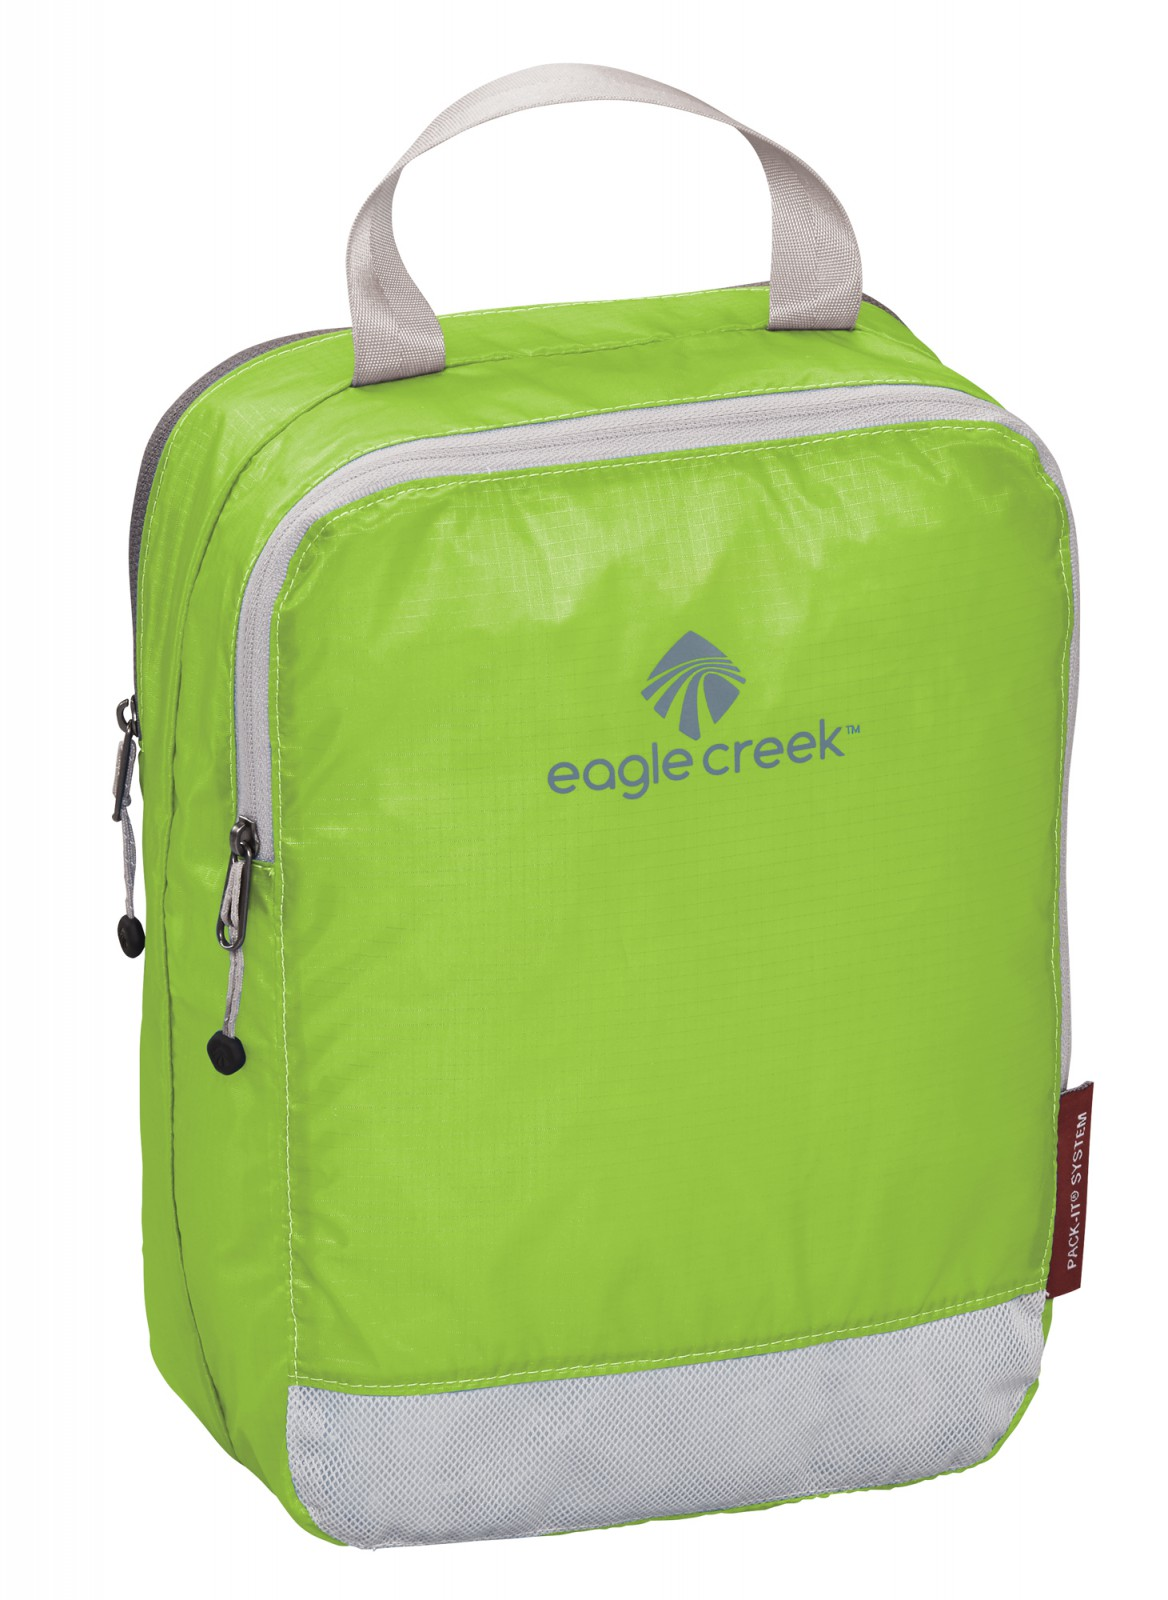 eagle creek Pack-It Specter Clean Dirty Cube S Strobe Green